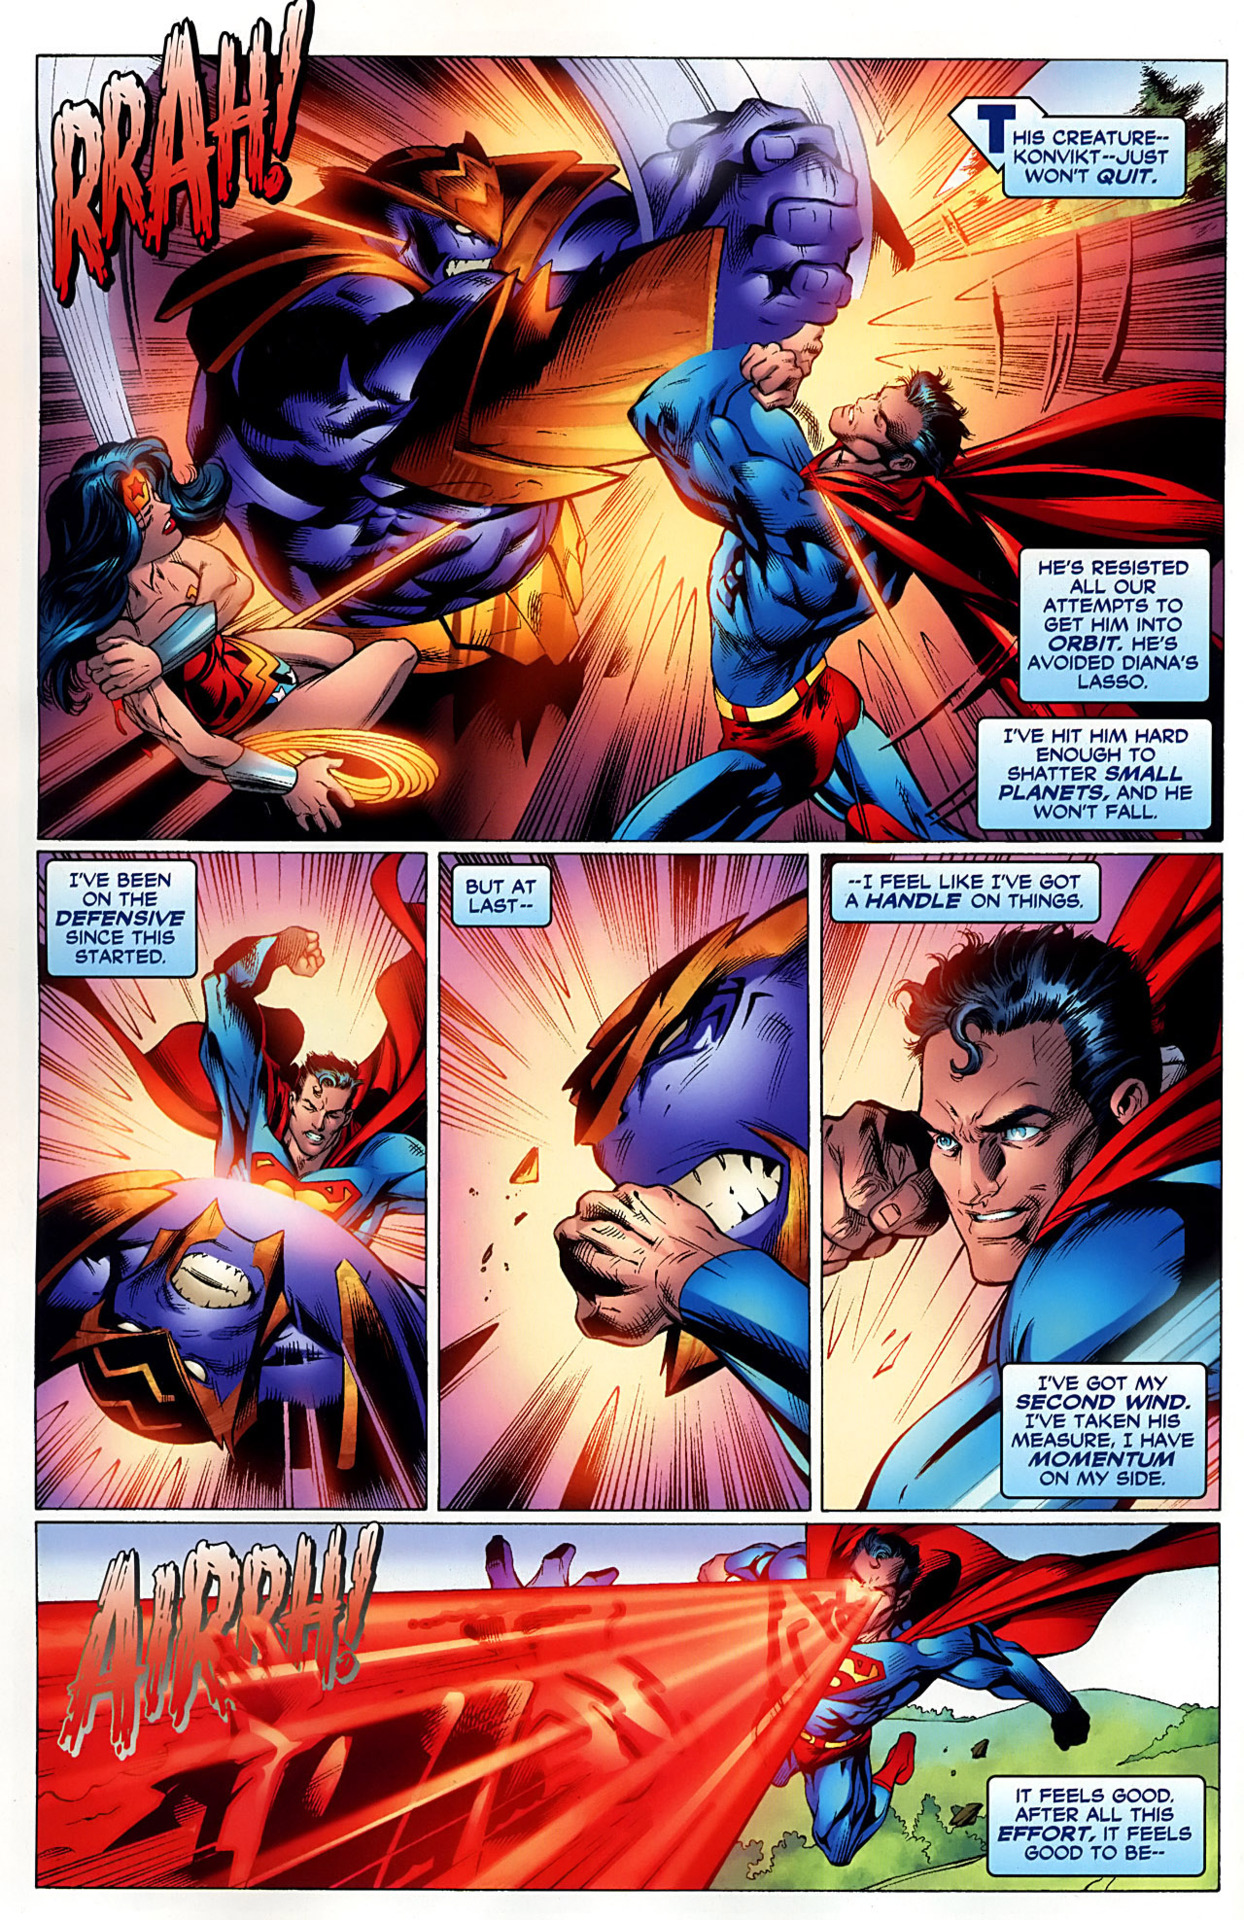 Superman was on the defensive but he could still punch Konvikt hard enough to shatter small planets